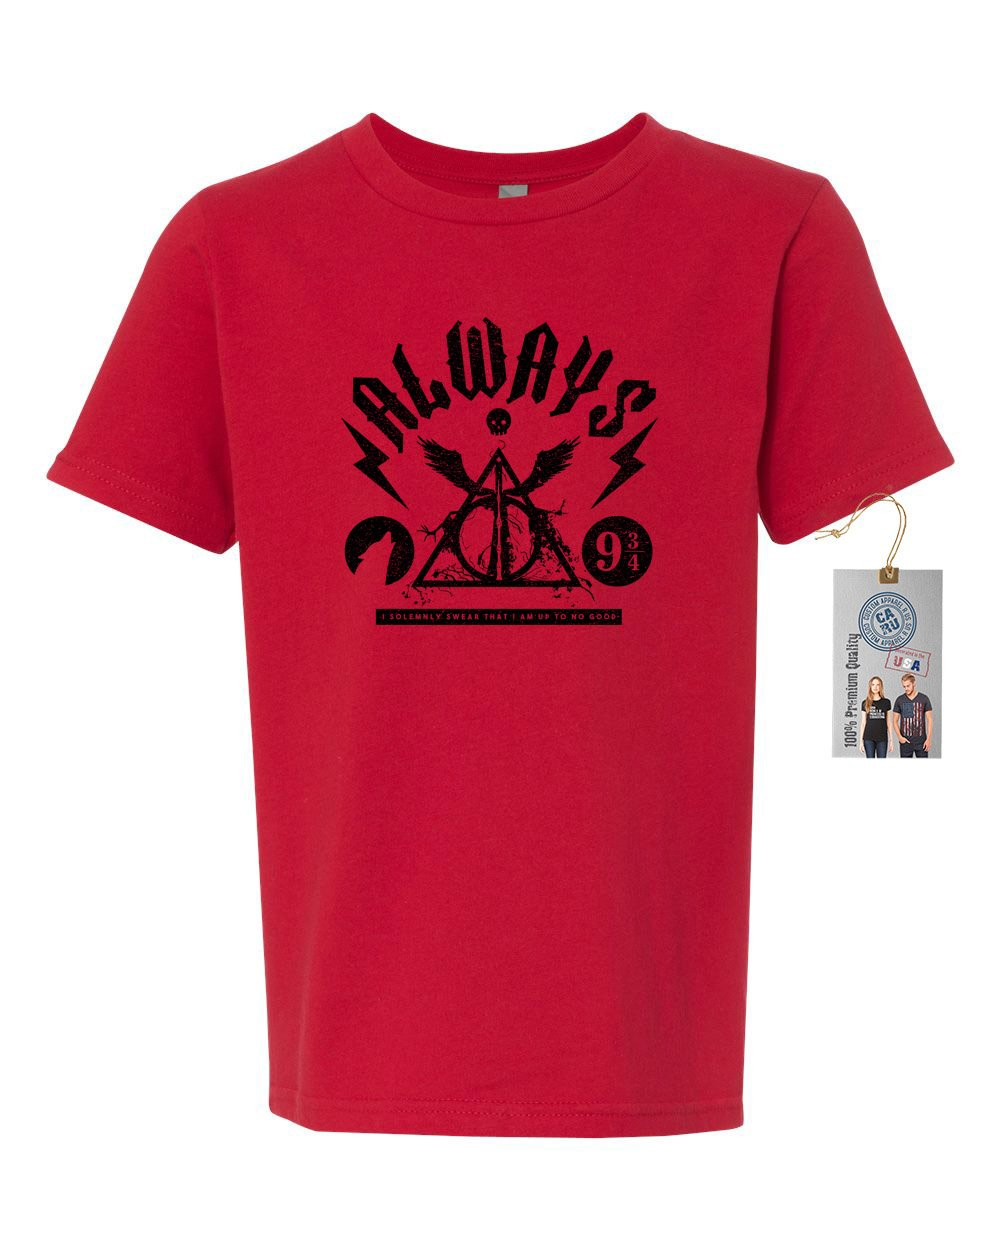 Harry Potter Always Saying with Symbols Youth Short Sleeve Shirt Red M